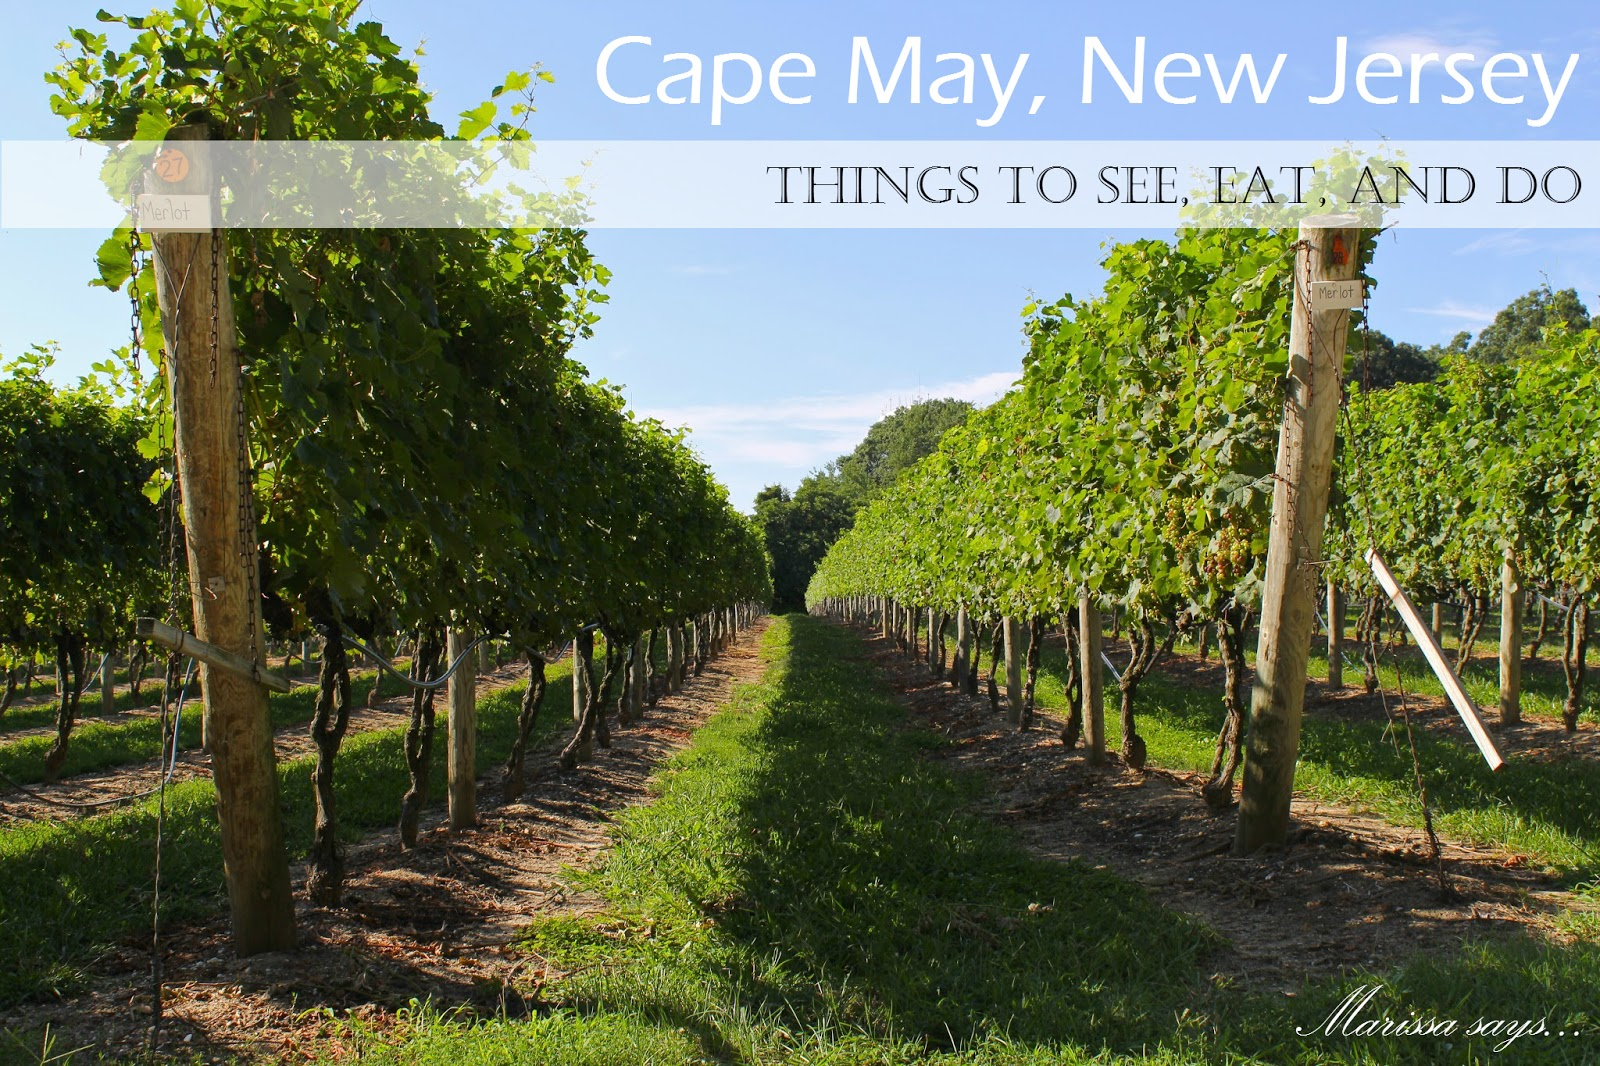 vinyard in cape may new jersey